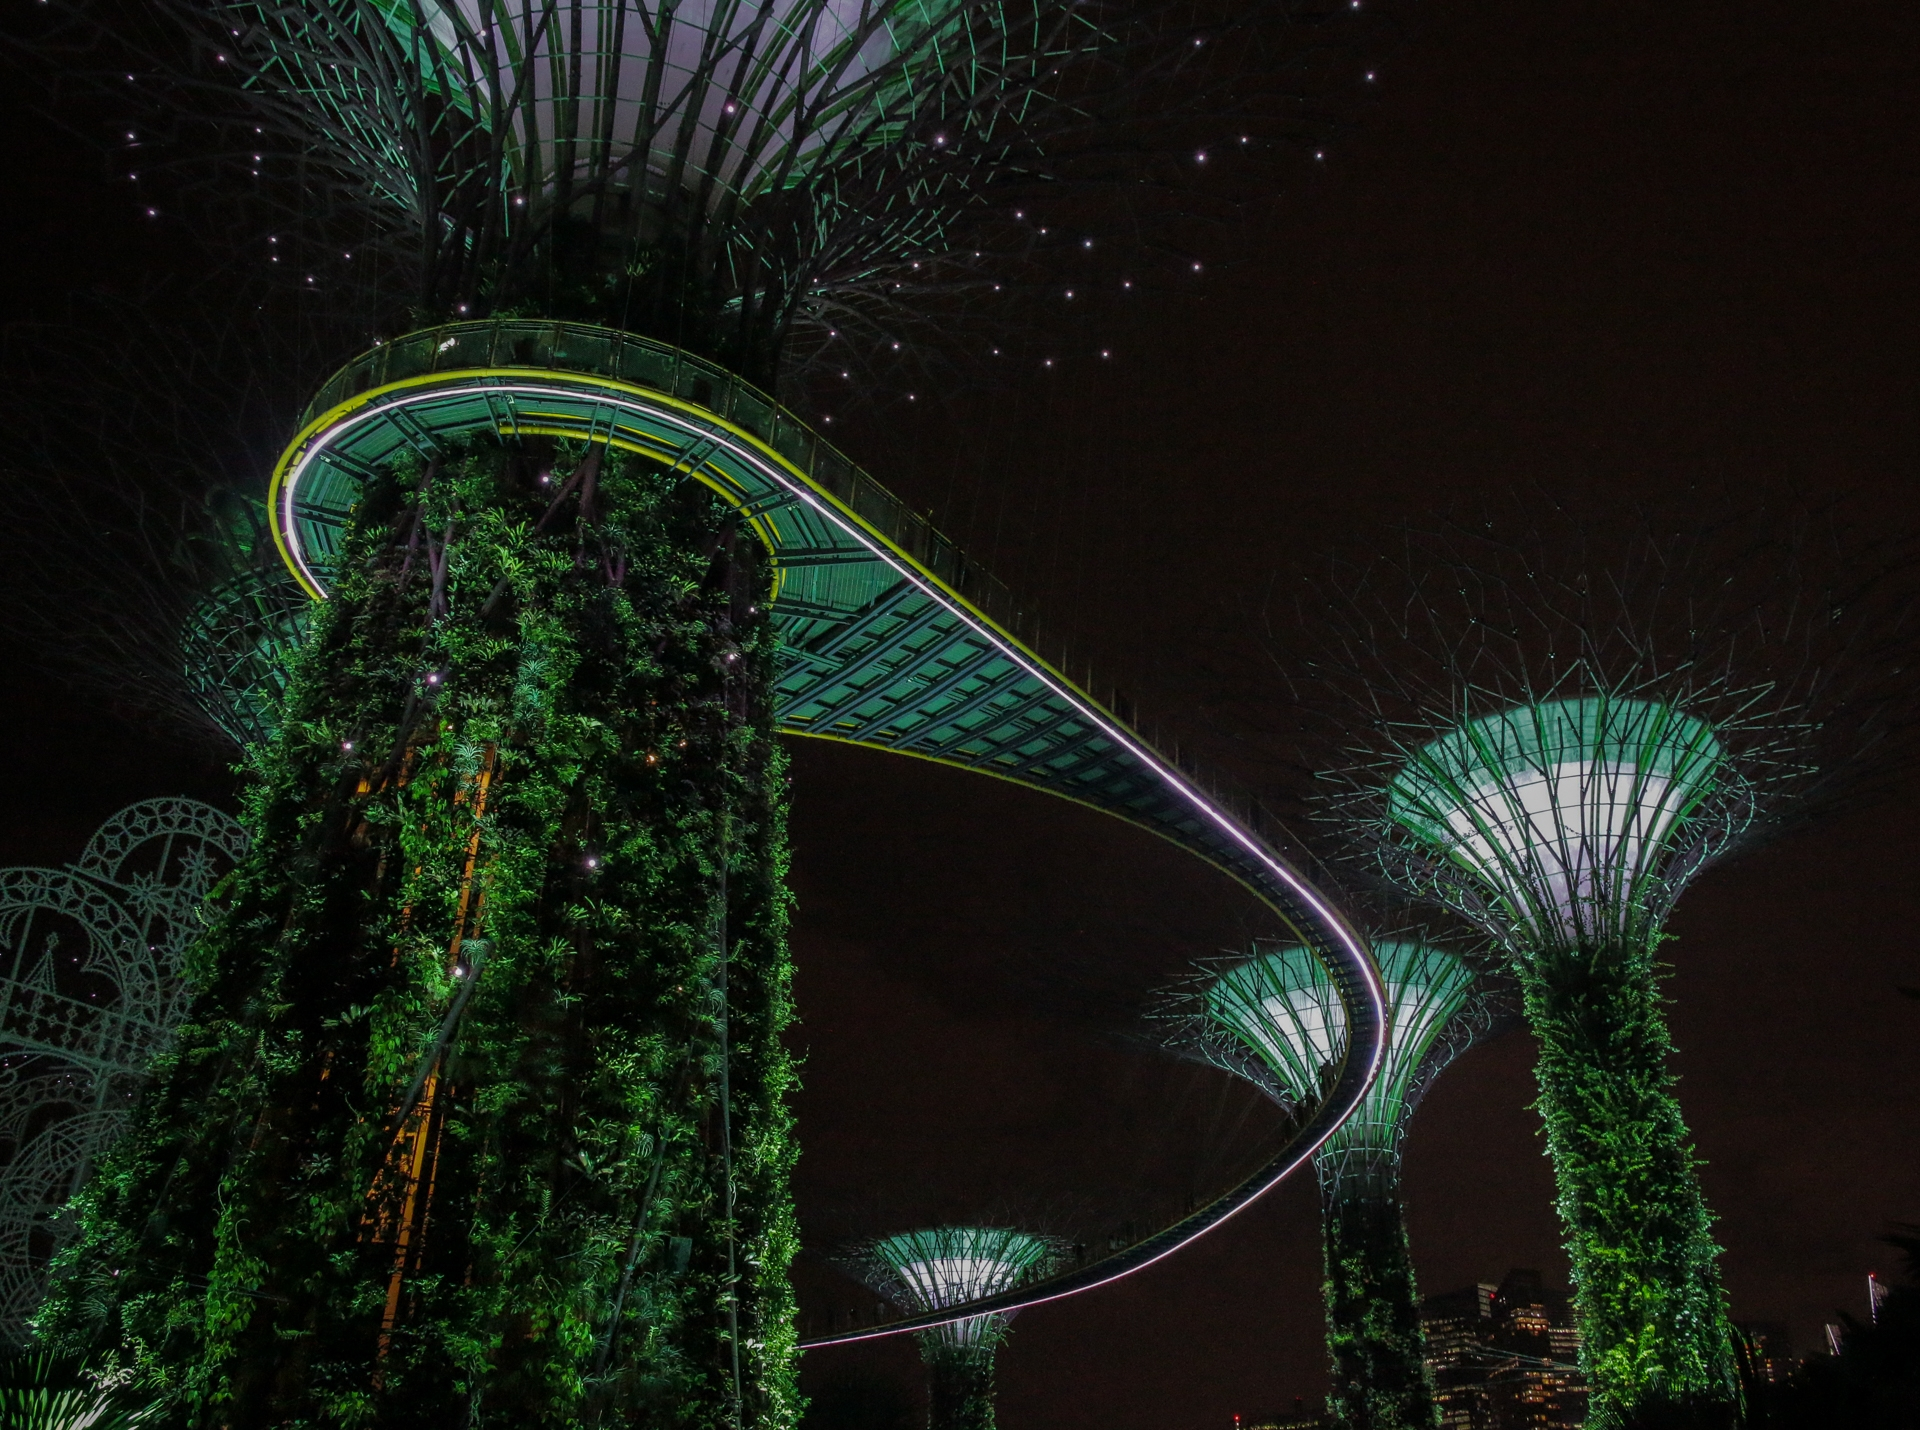 Ari Lindholm - Gardens by the bay